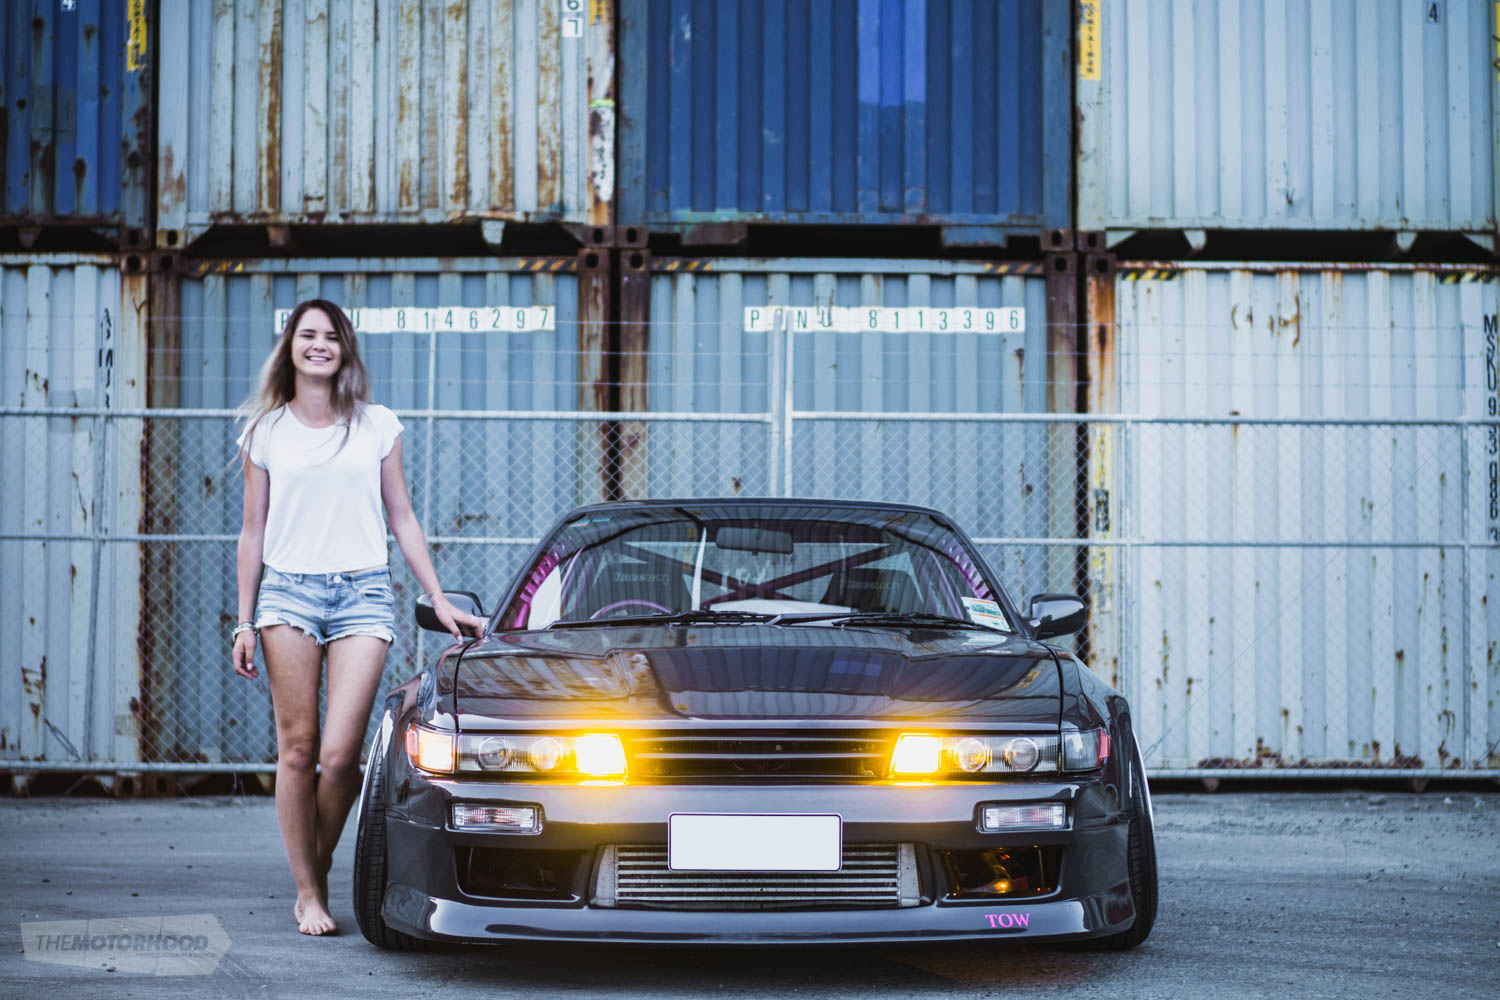 Lethal weapon: immaculate street-legal S13 drifter — The